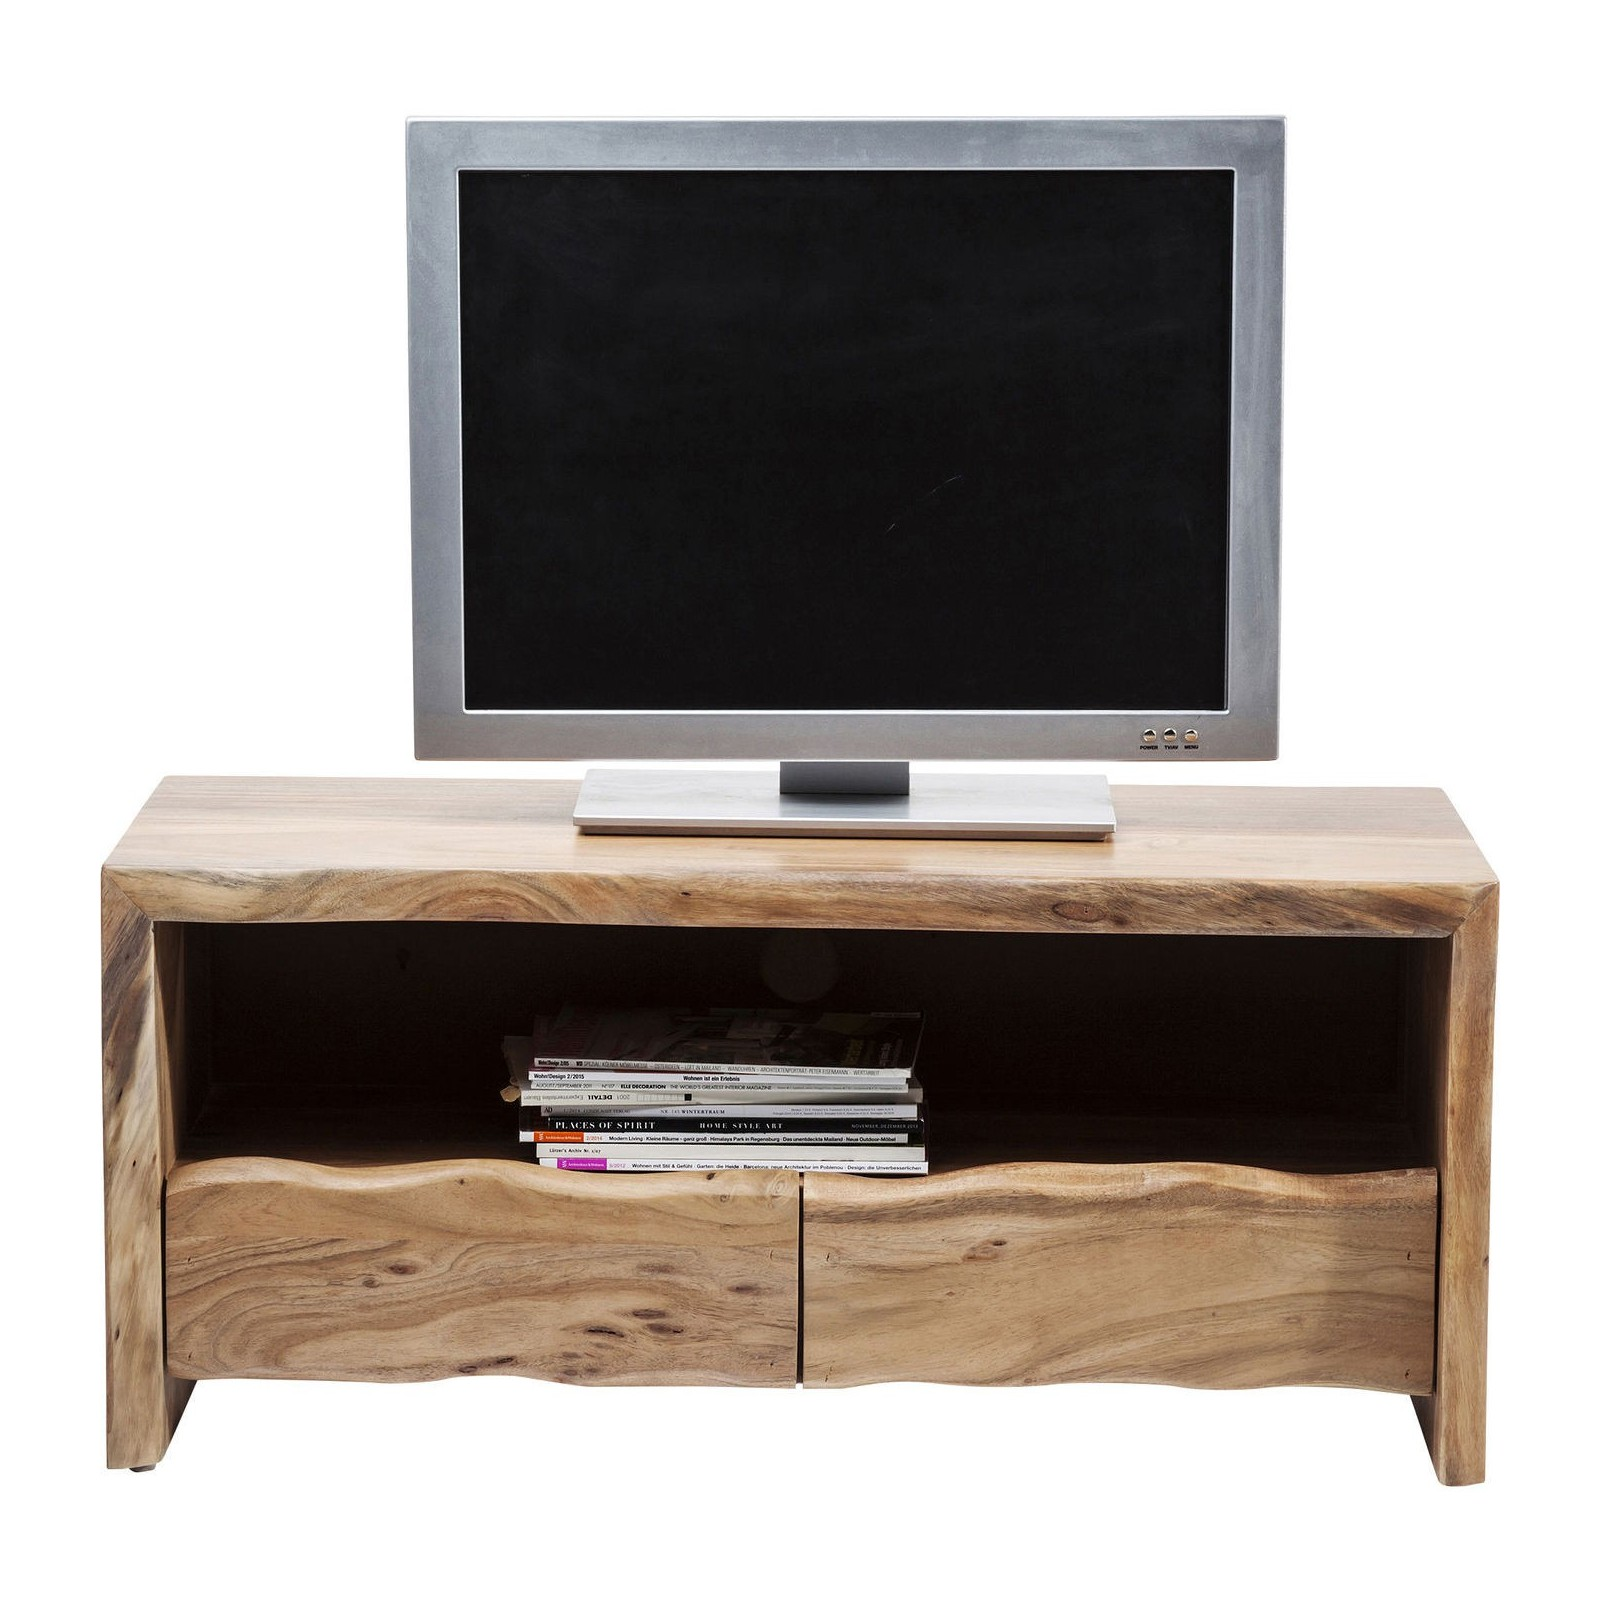 Meuble tv scandinave en bois pure nature kare design for Meuble tv 300 cm